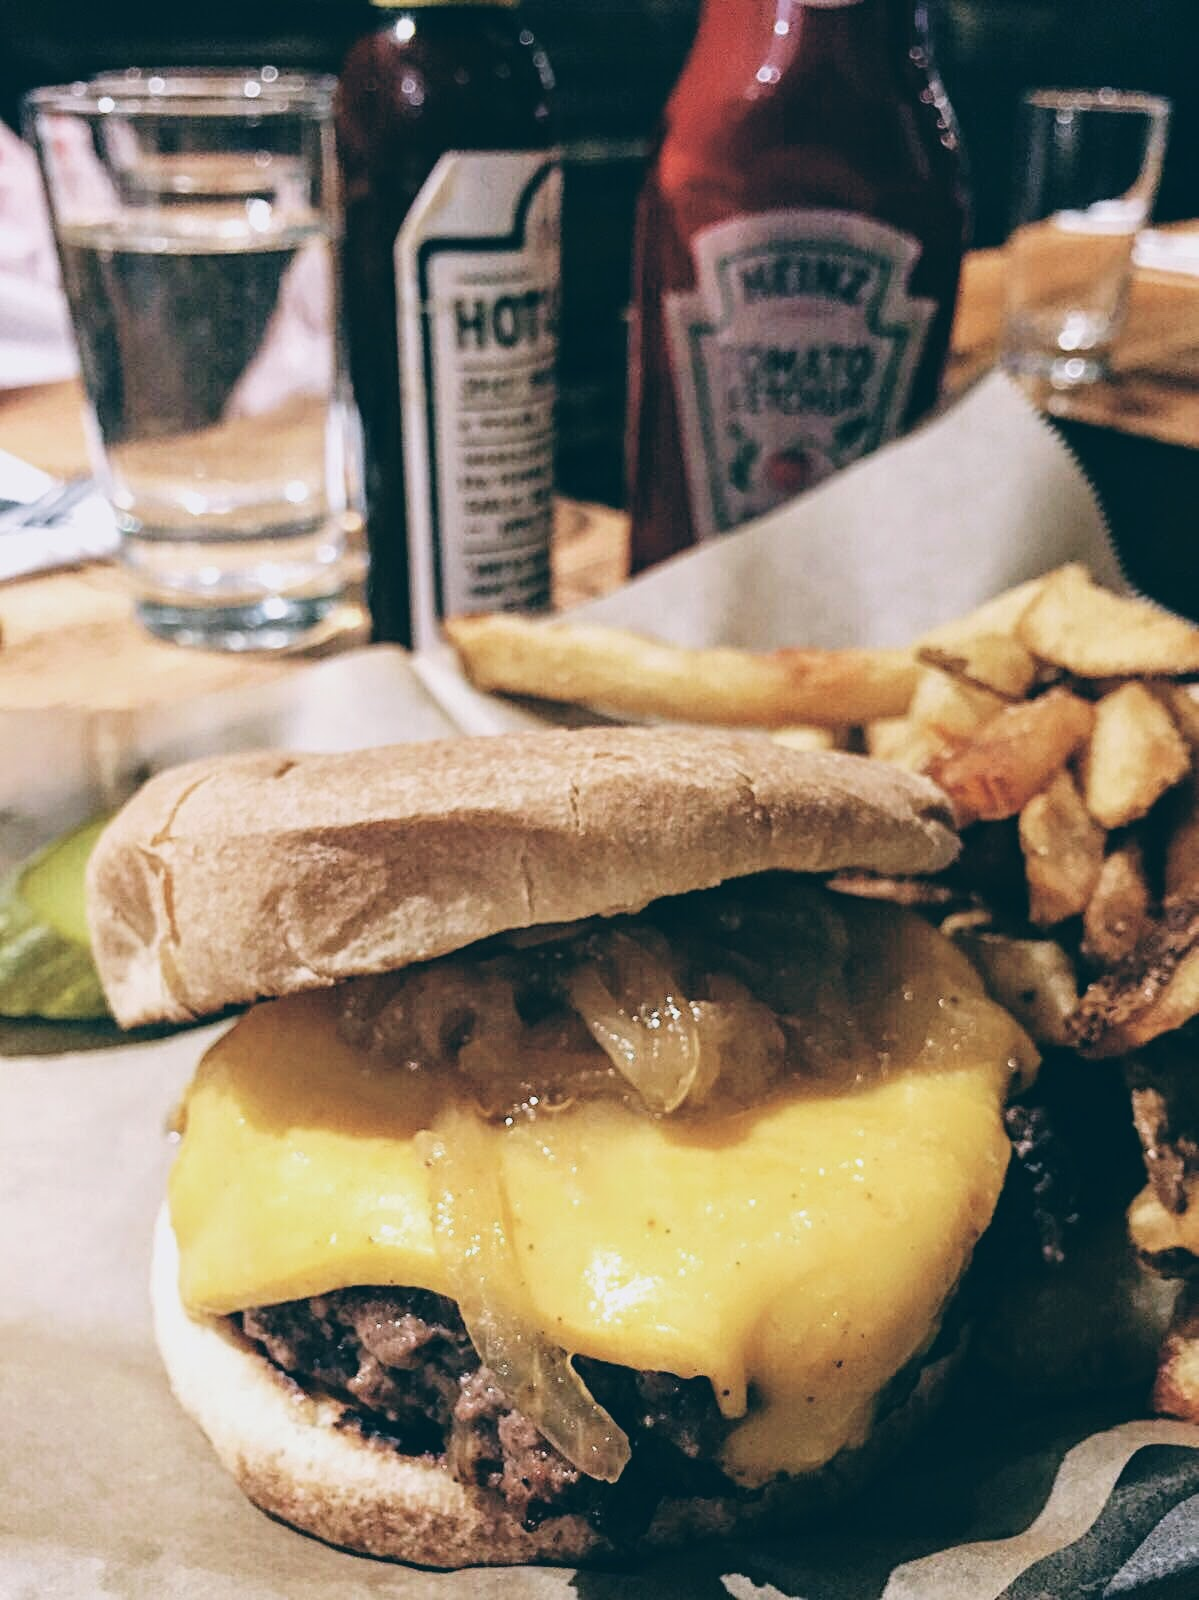 New York: undiscovered yet delicious burger at Brindle Room